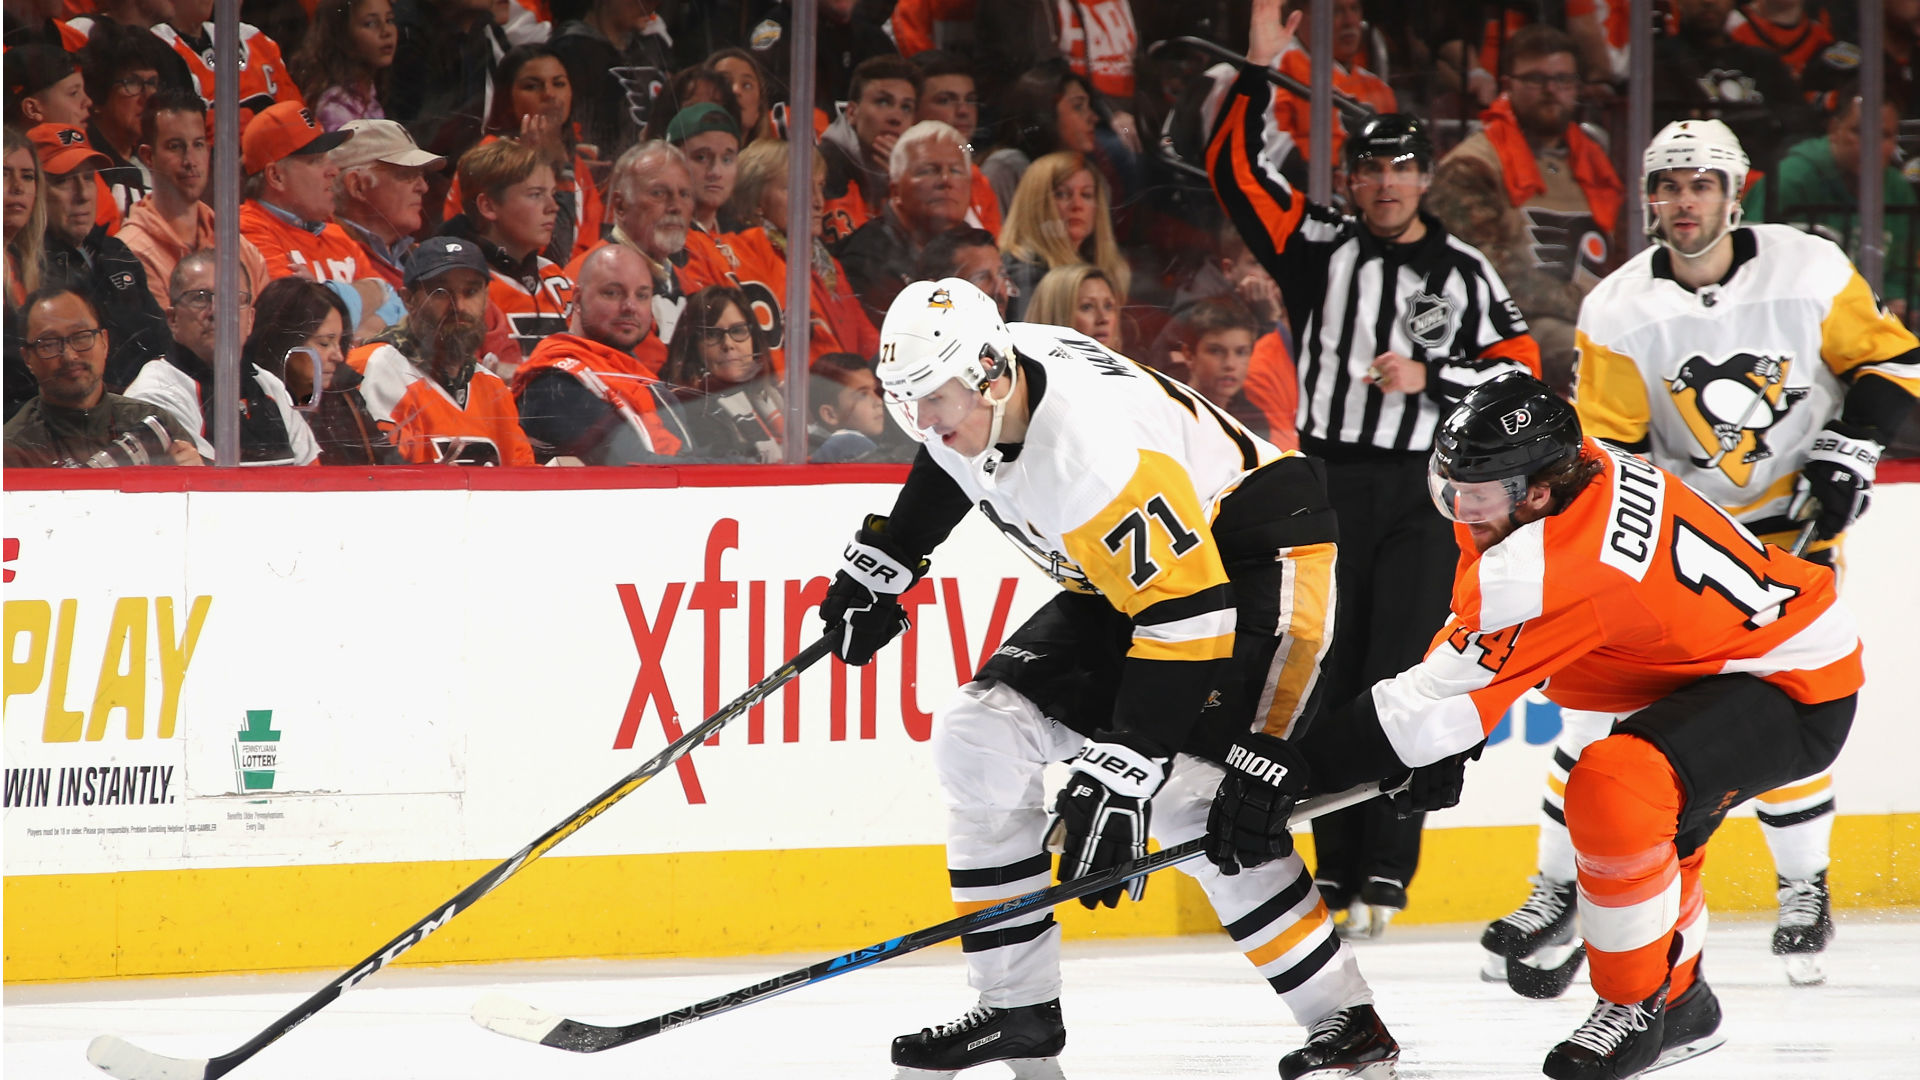 Philadelphia Flyers can stick a fork in season after Game 4 loss